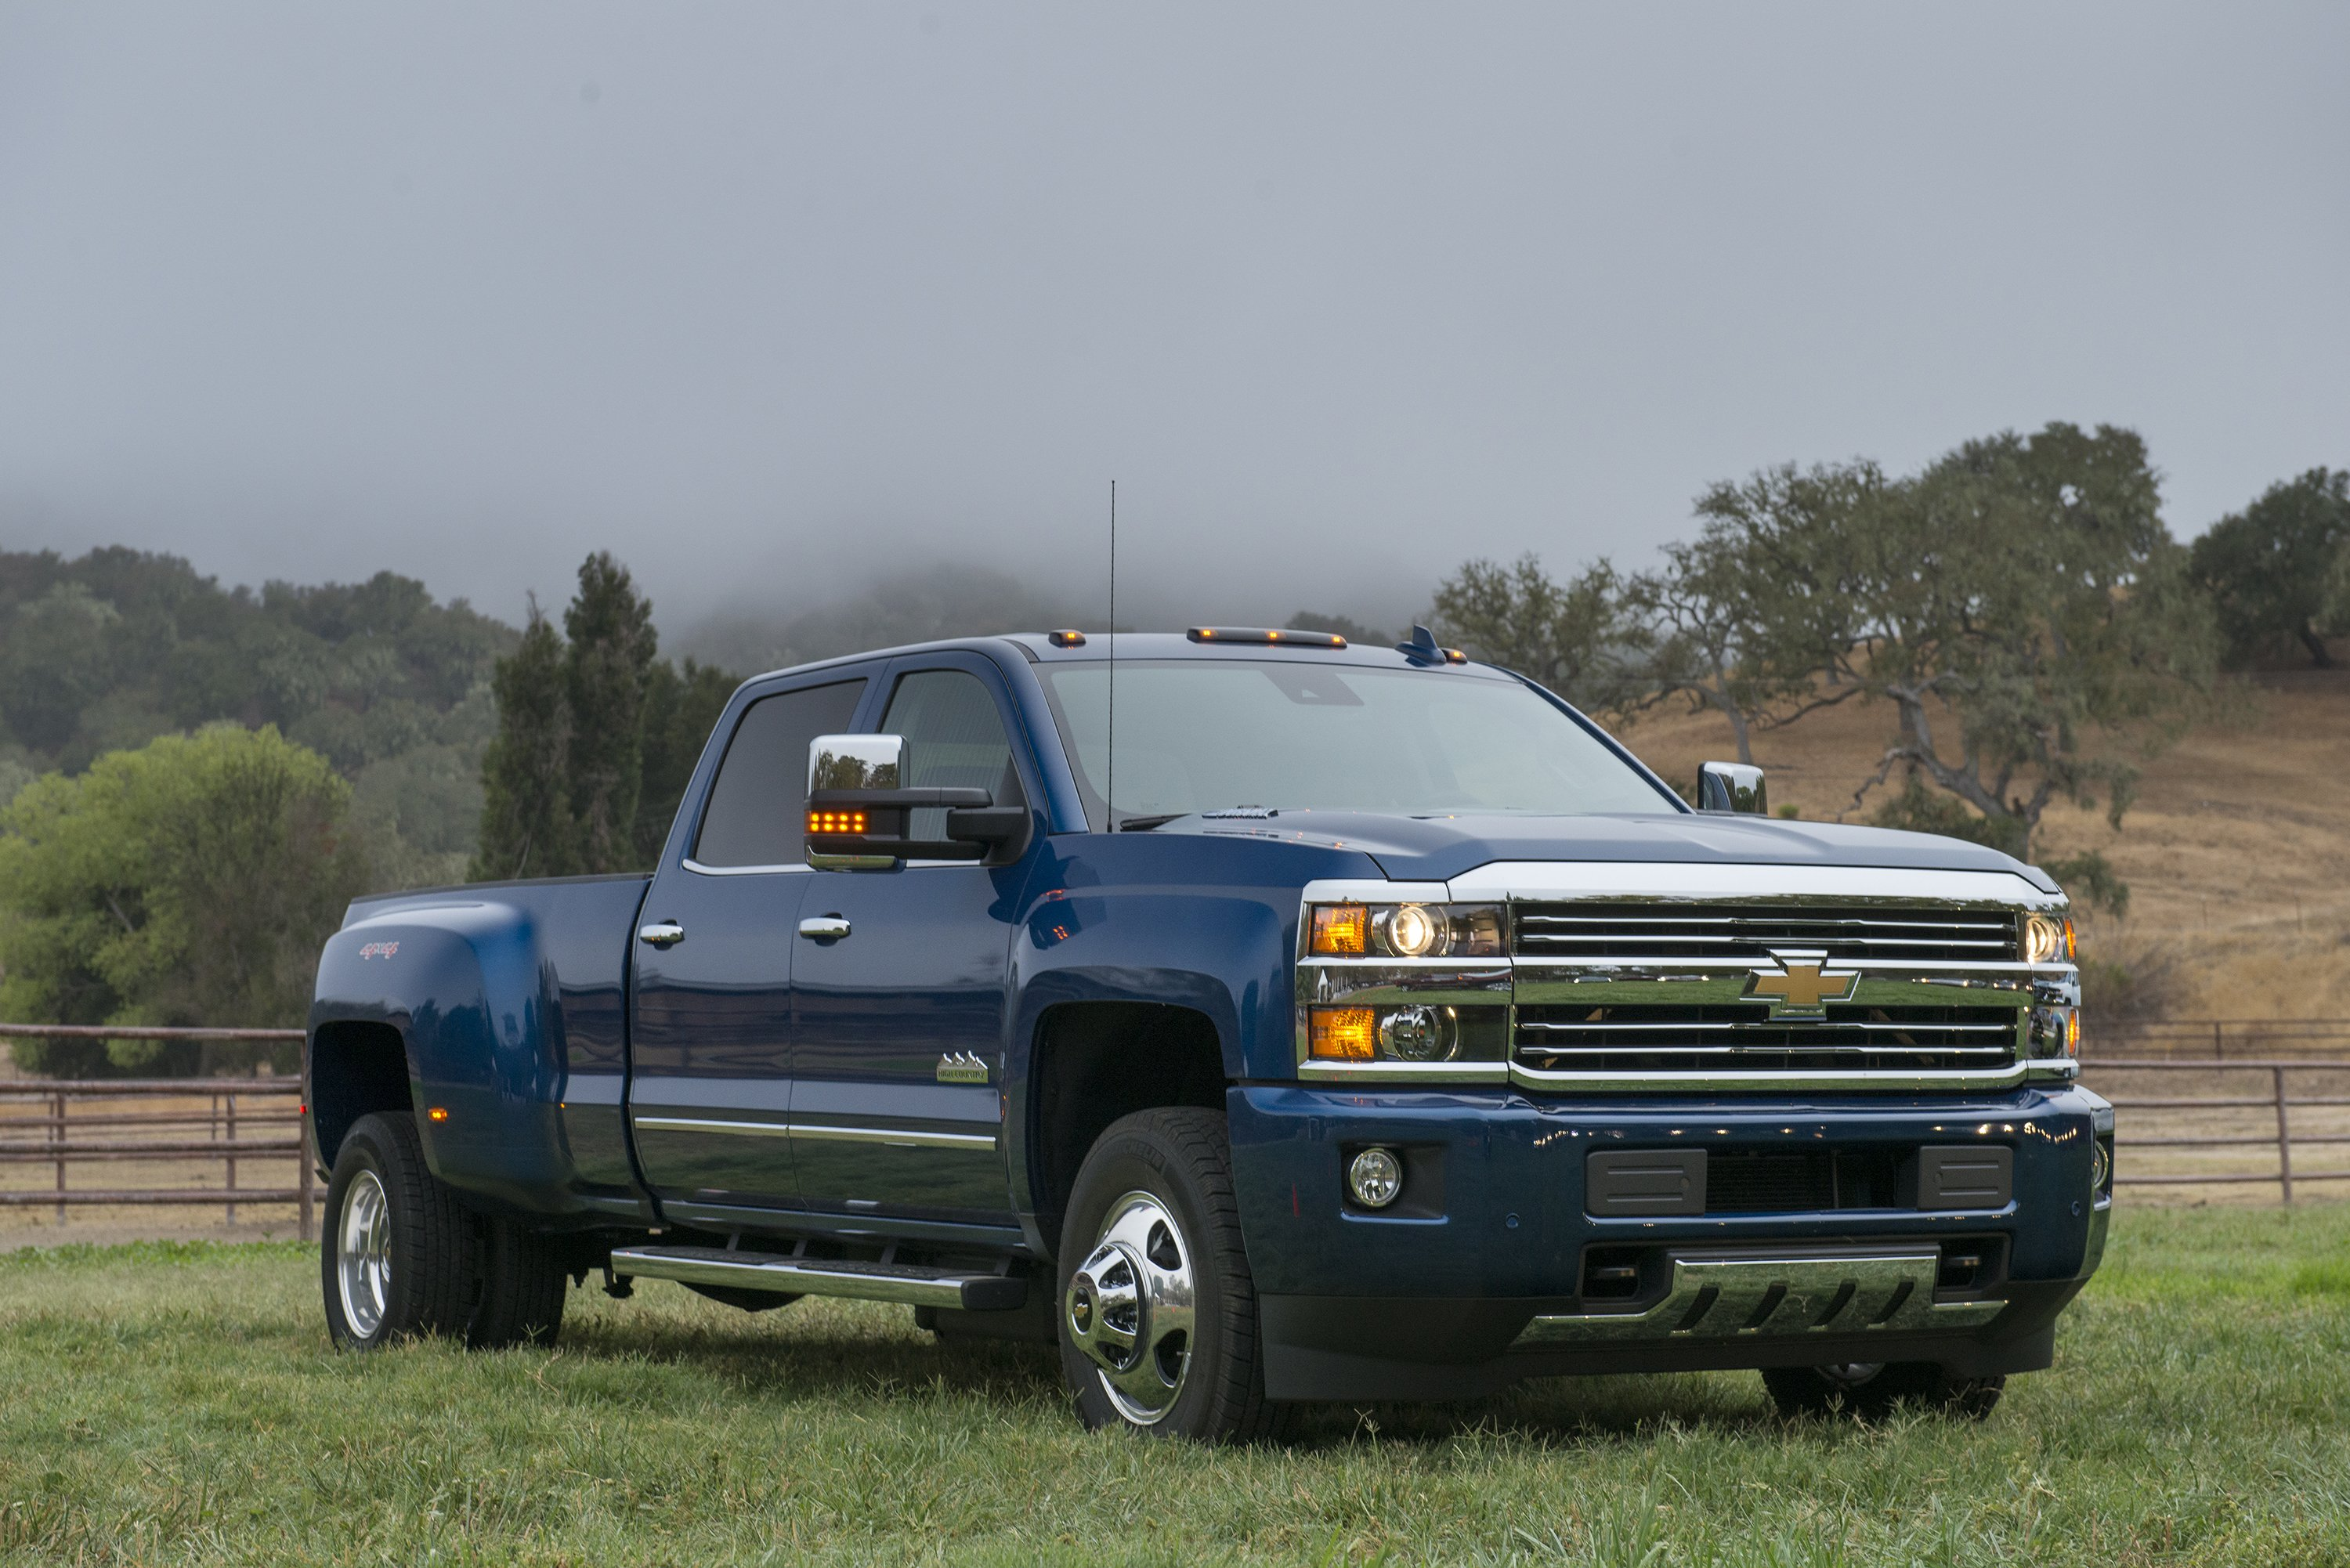 2016 chevrolet silverado 3500 hd high country crew cab pickup wallpaper 3000x2002 814970. Black Bedroom Furniture Sets. Home Design Ideas